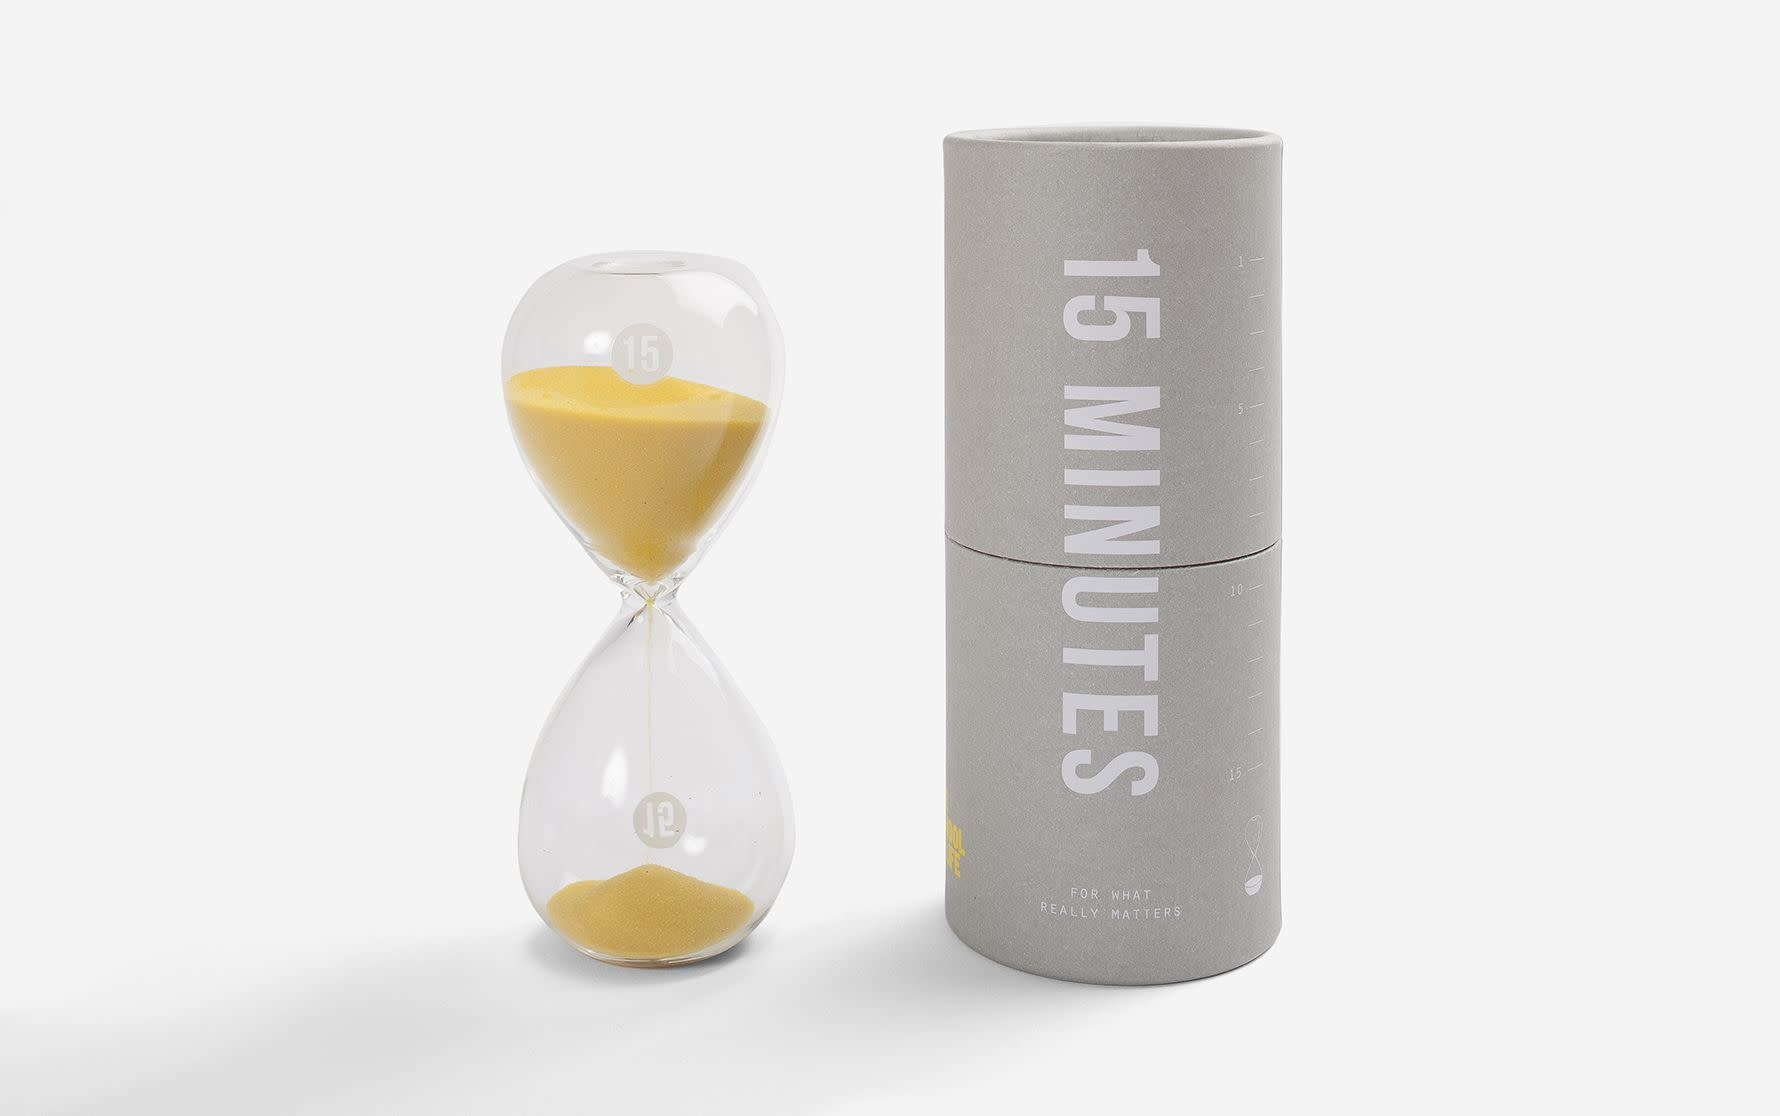 School of Life Glass Timer - 15 Minute Glass Timer